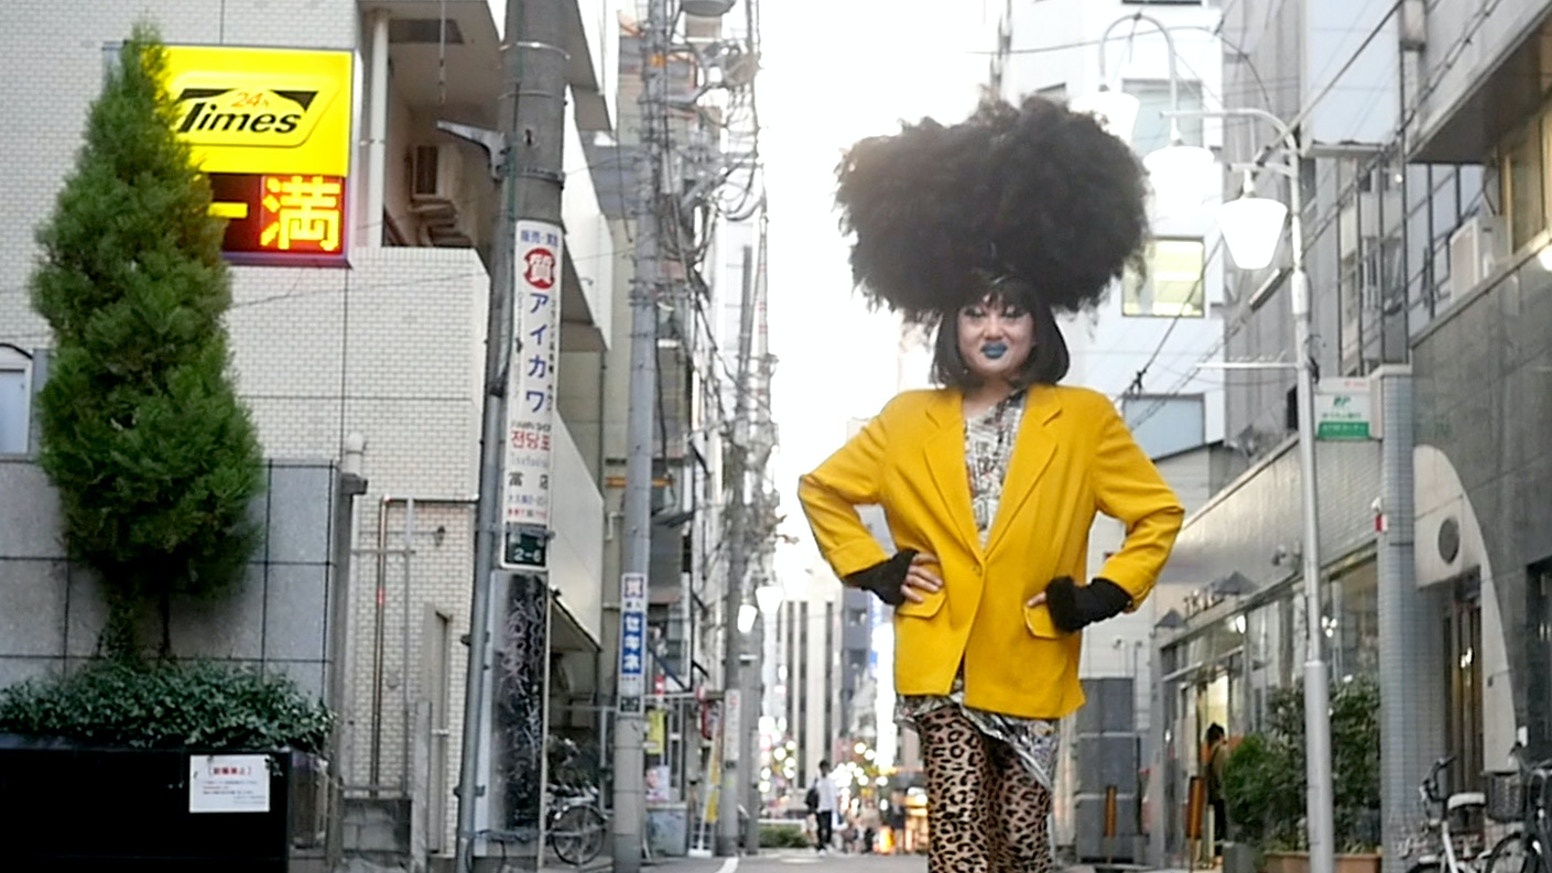 Queer Japan is a documentary about artists, activists, and everyday people from across the spectrum of gender and sexuality in Japan.